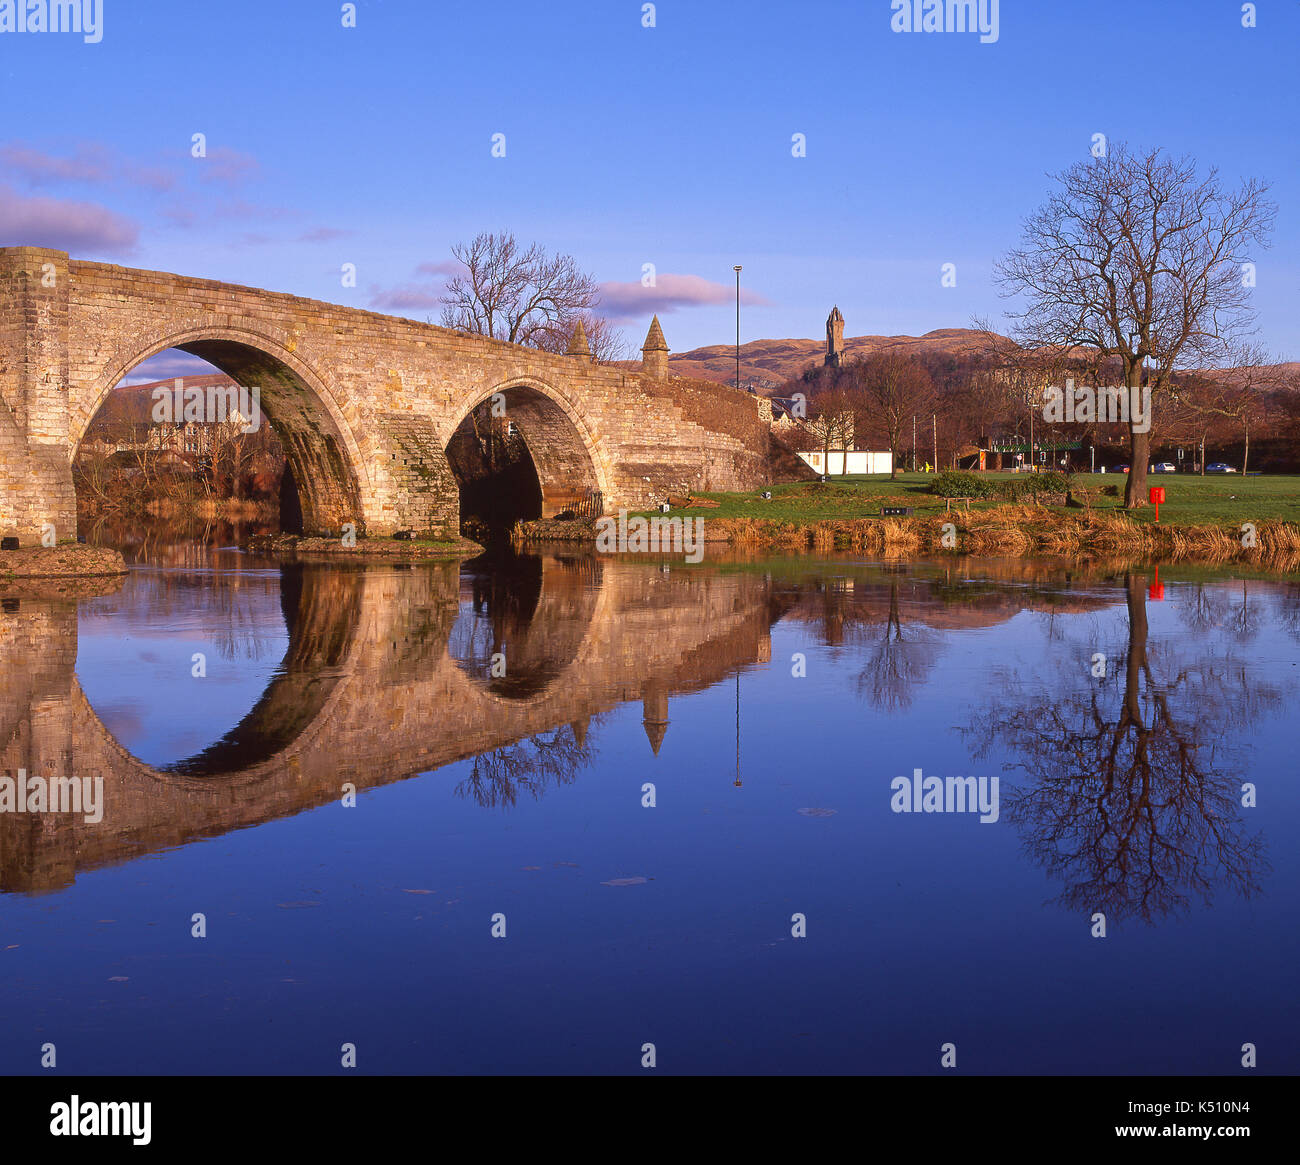 Winter reflections on the River Forth from The old Bridge, Stirling with the Wallace Monument in view, Central Scotland - Stock Image